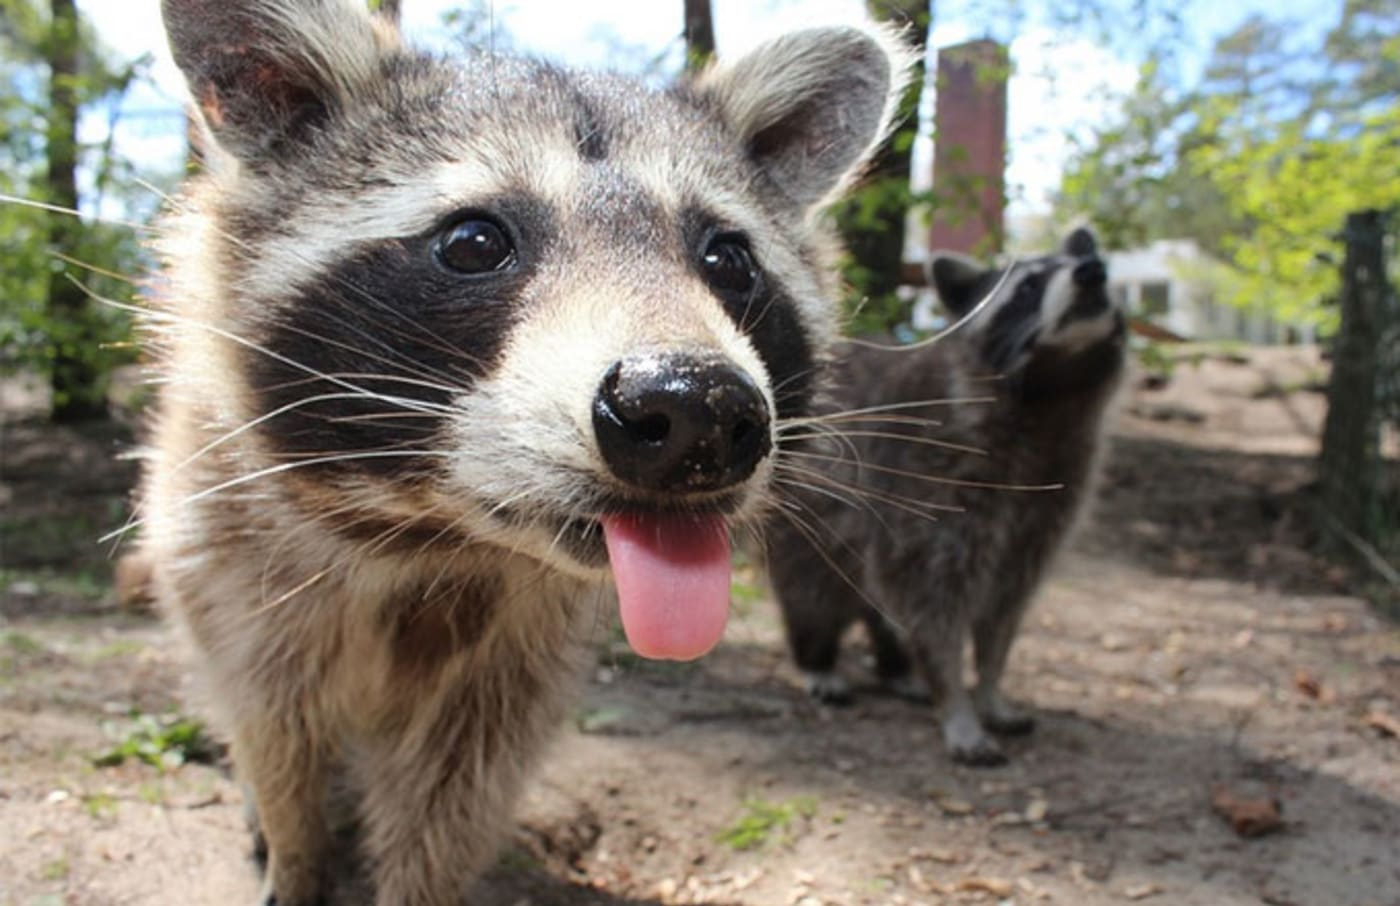 A super thirsty raccoon.